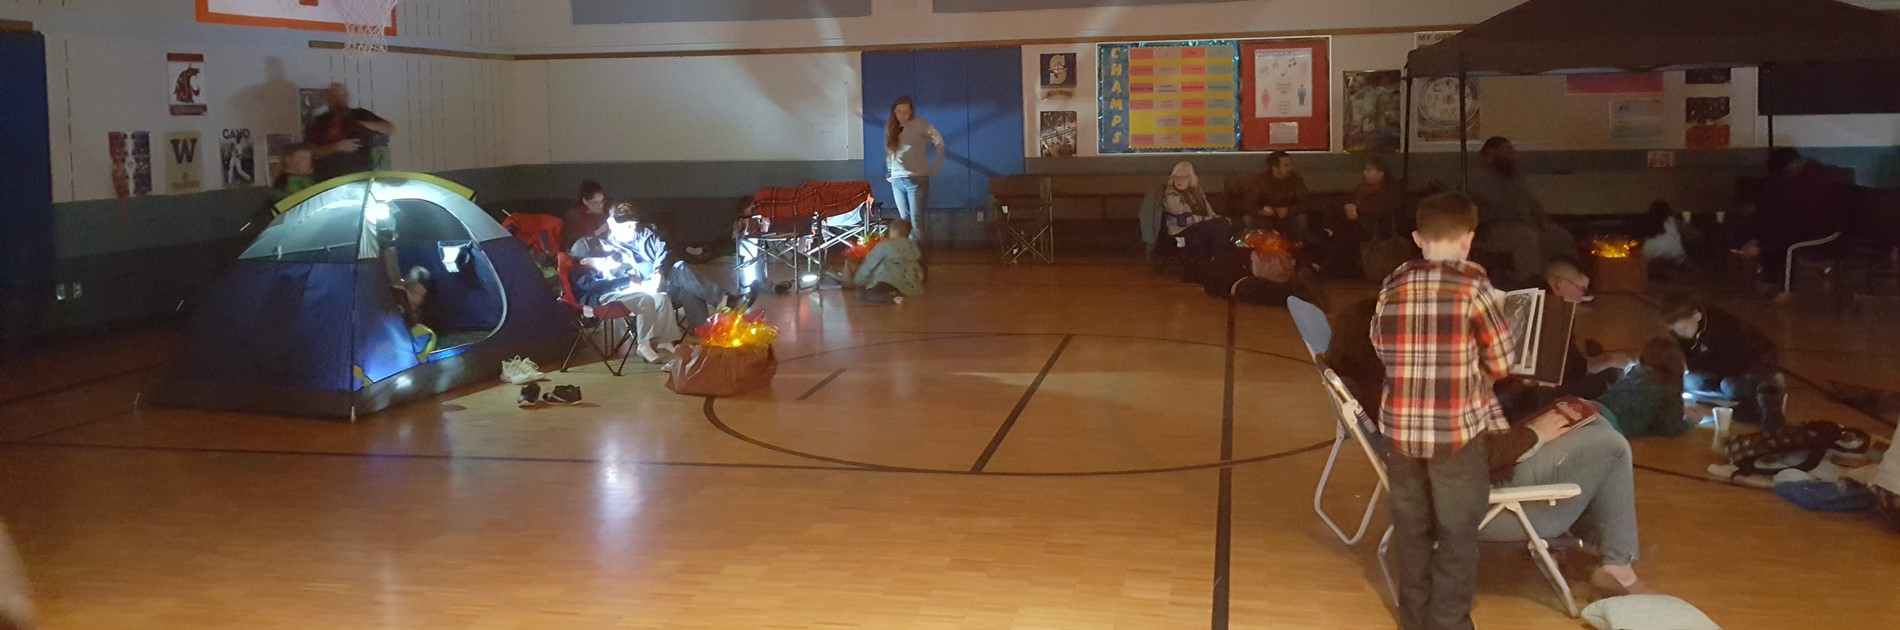 Camp out Reading Event in the Gym